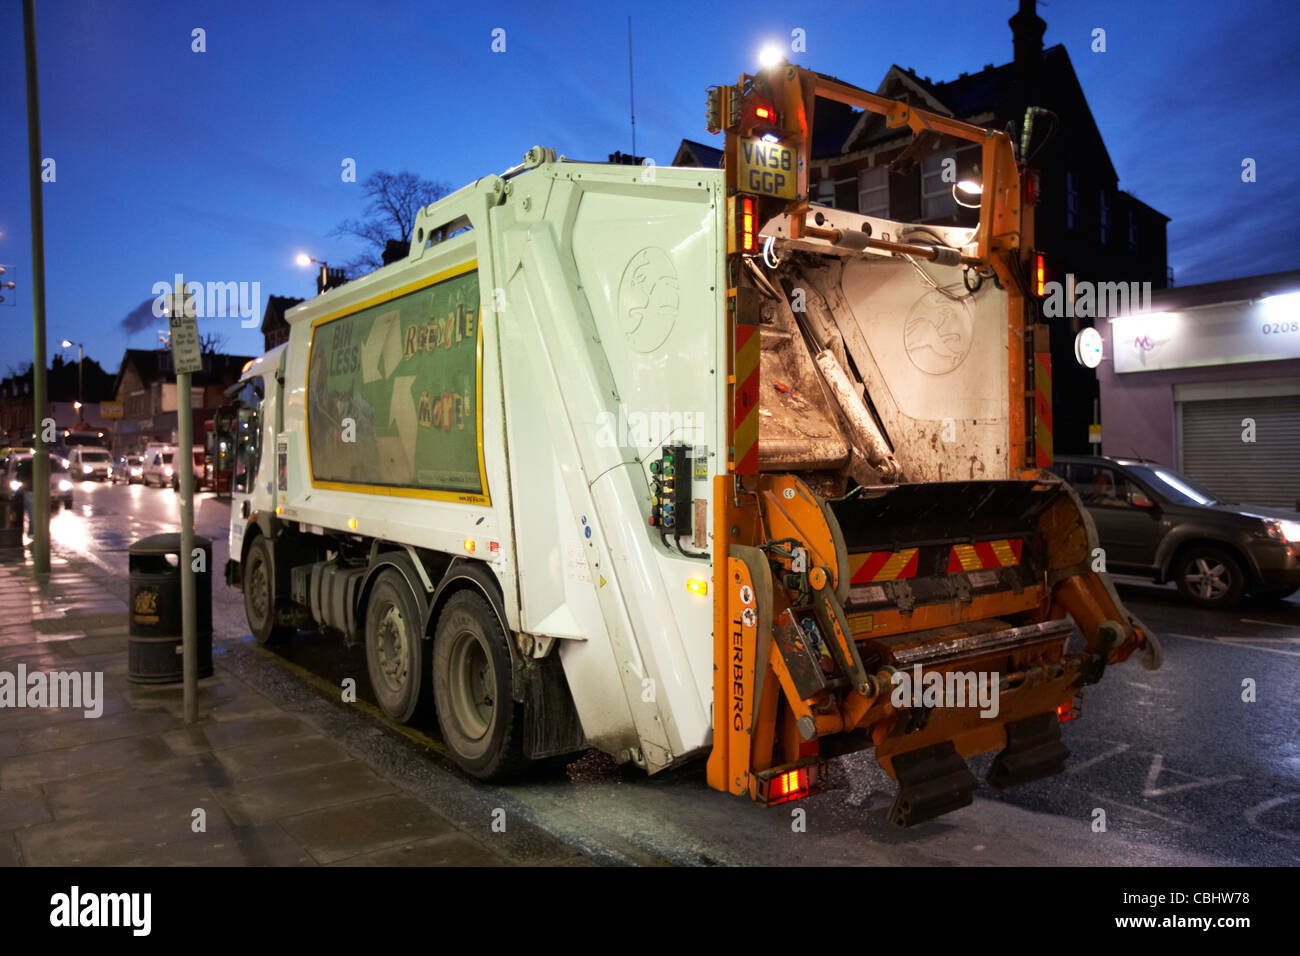 early morning bin refuse collection in north london england united kingdom uk - Stock Image